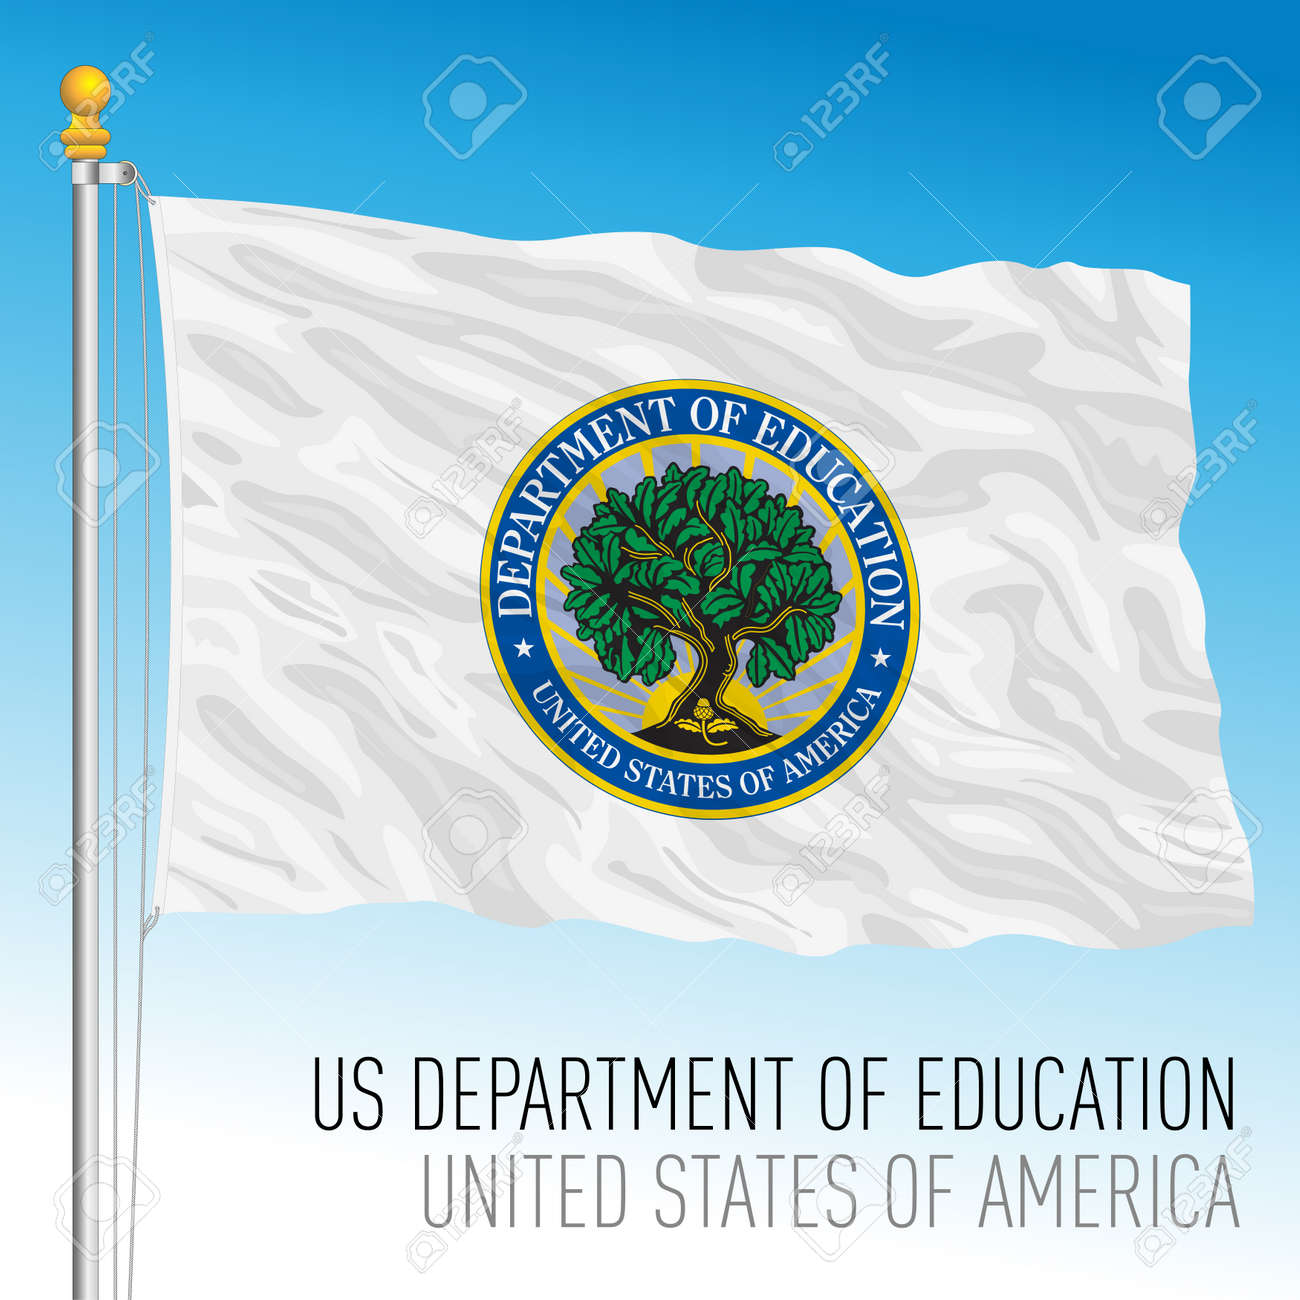 US Department of Education flag, United States of America, vector illustration - 172982801